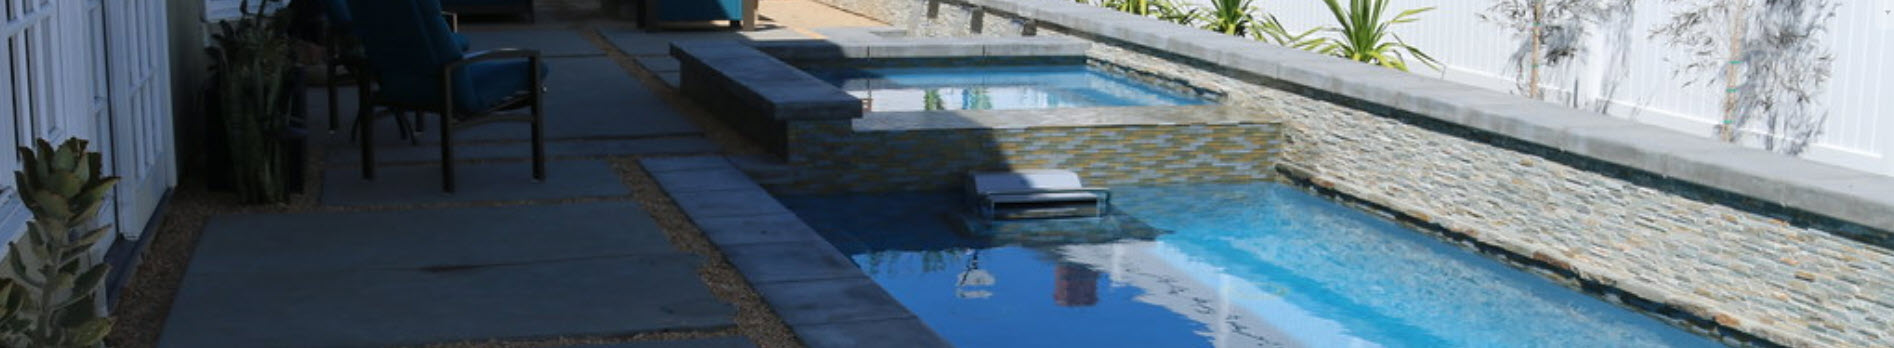 3 Ways an Endless Pool Fastlane Can Upgrade Your Swimming Pool, Lap Pools Brandon SD